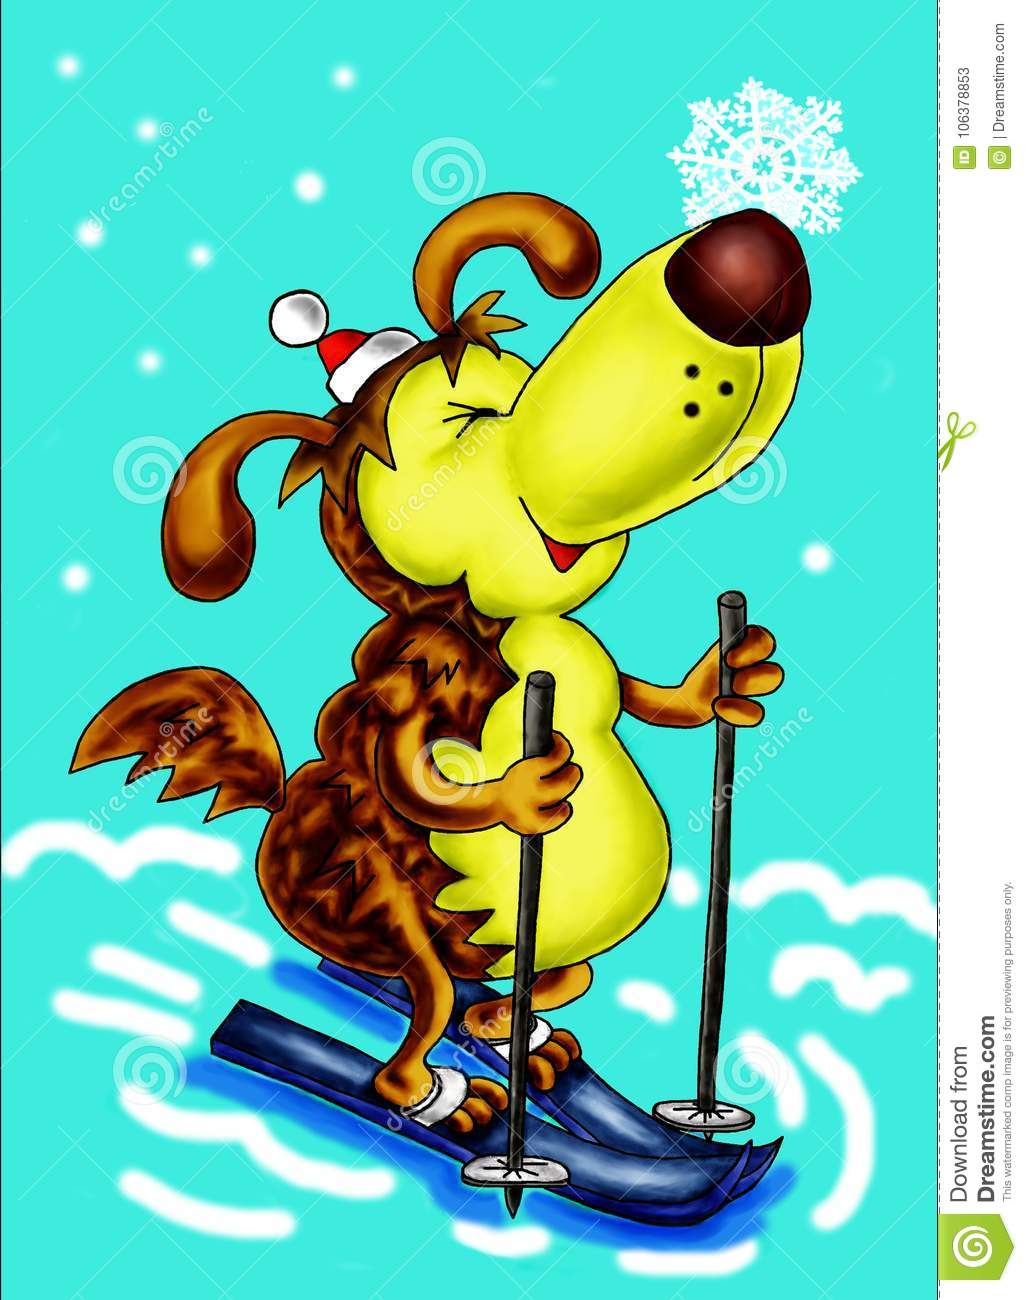 Symbol of 2018 yellow dog happy new year stock illustration symbol of 2018 yellow dog happy new year biocorpaavc Images